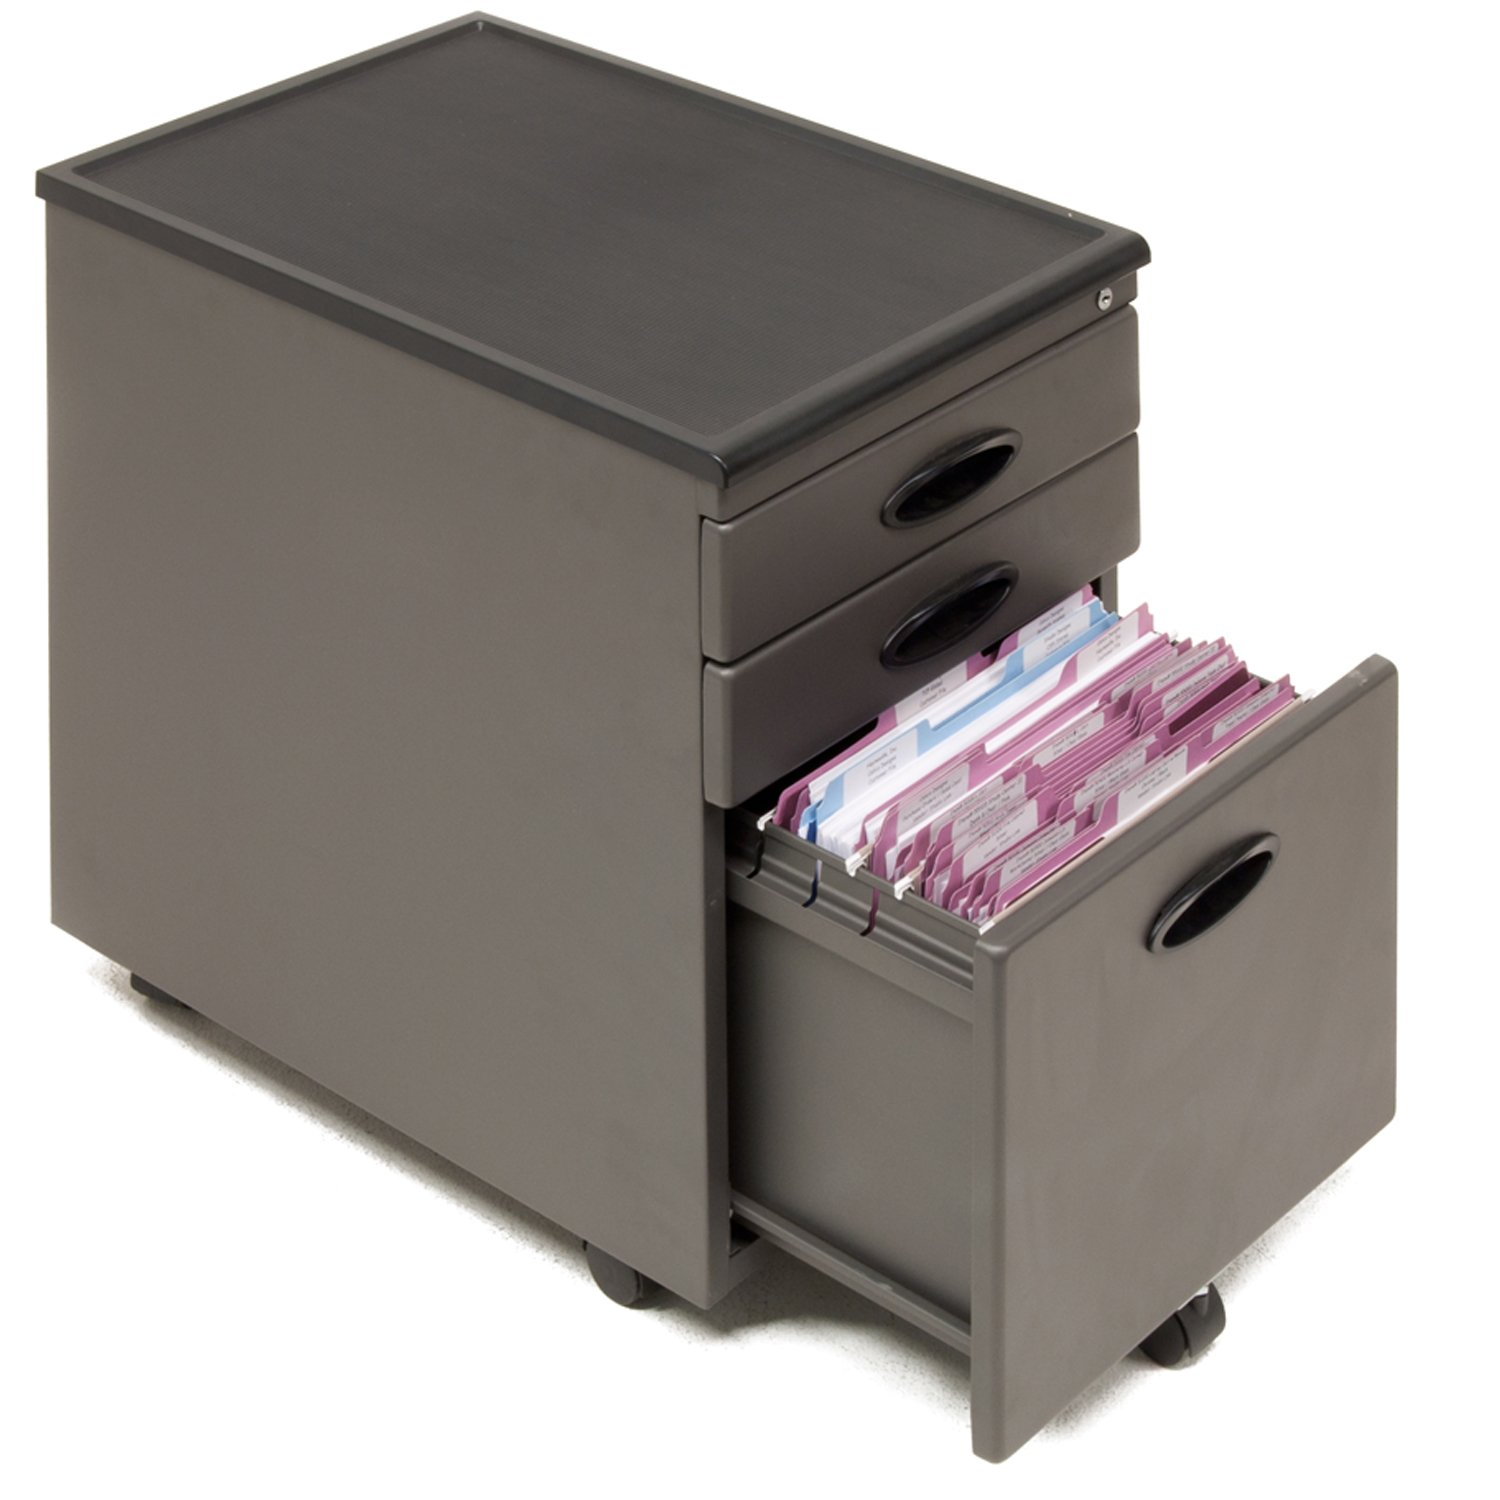 Delicieux Amazon.com: Studio RTA 3 Drawer Mobile Metal File Cabinet In Pewter And  Black: Kitchen U0026 Dining